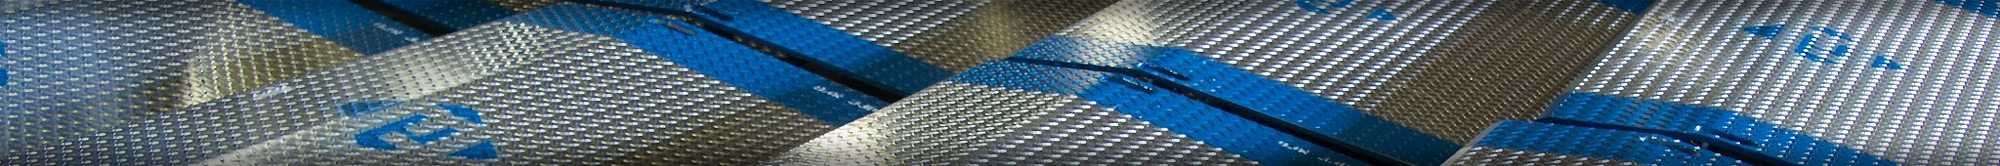 Steel Dock Board | Dock Boards Steel | Dock Board Steel